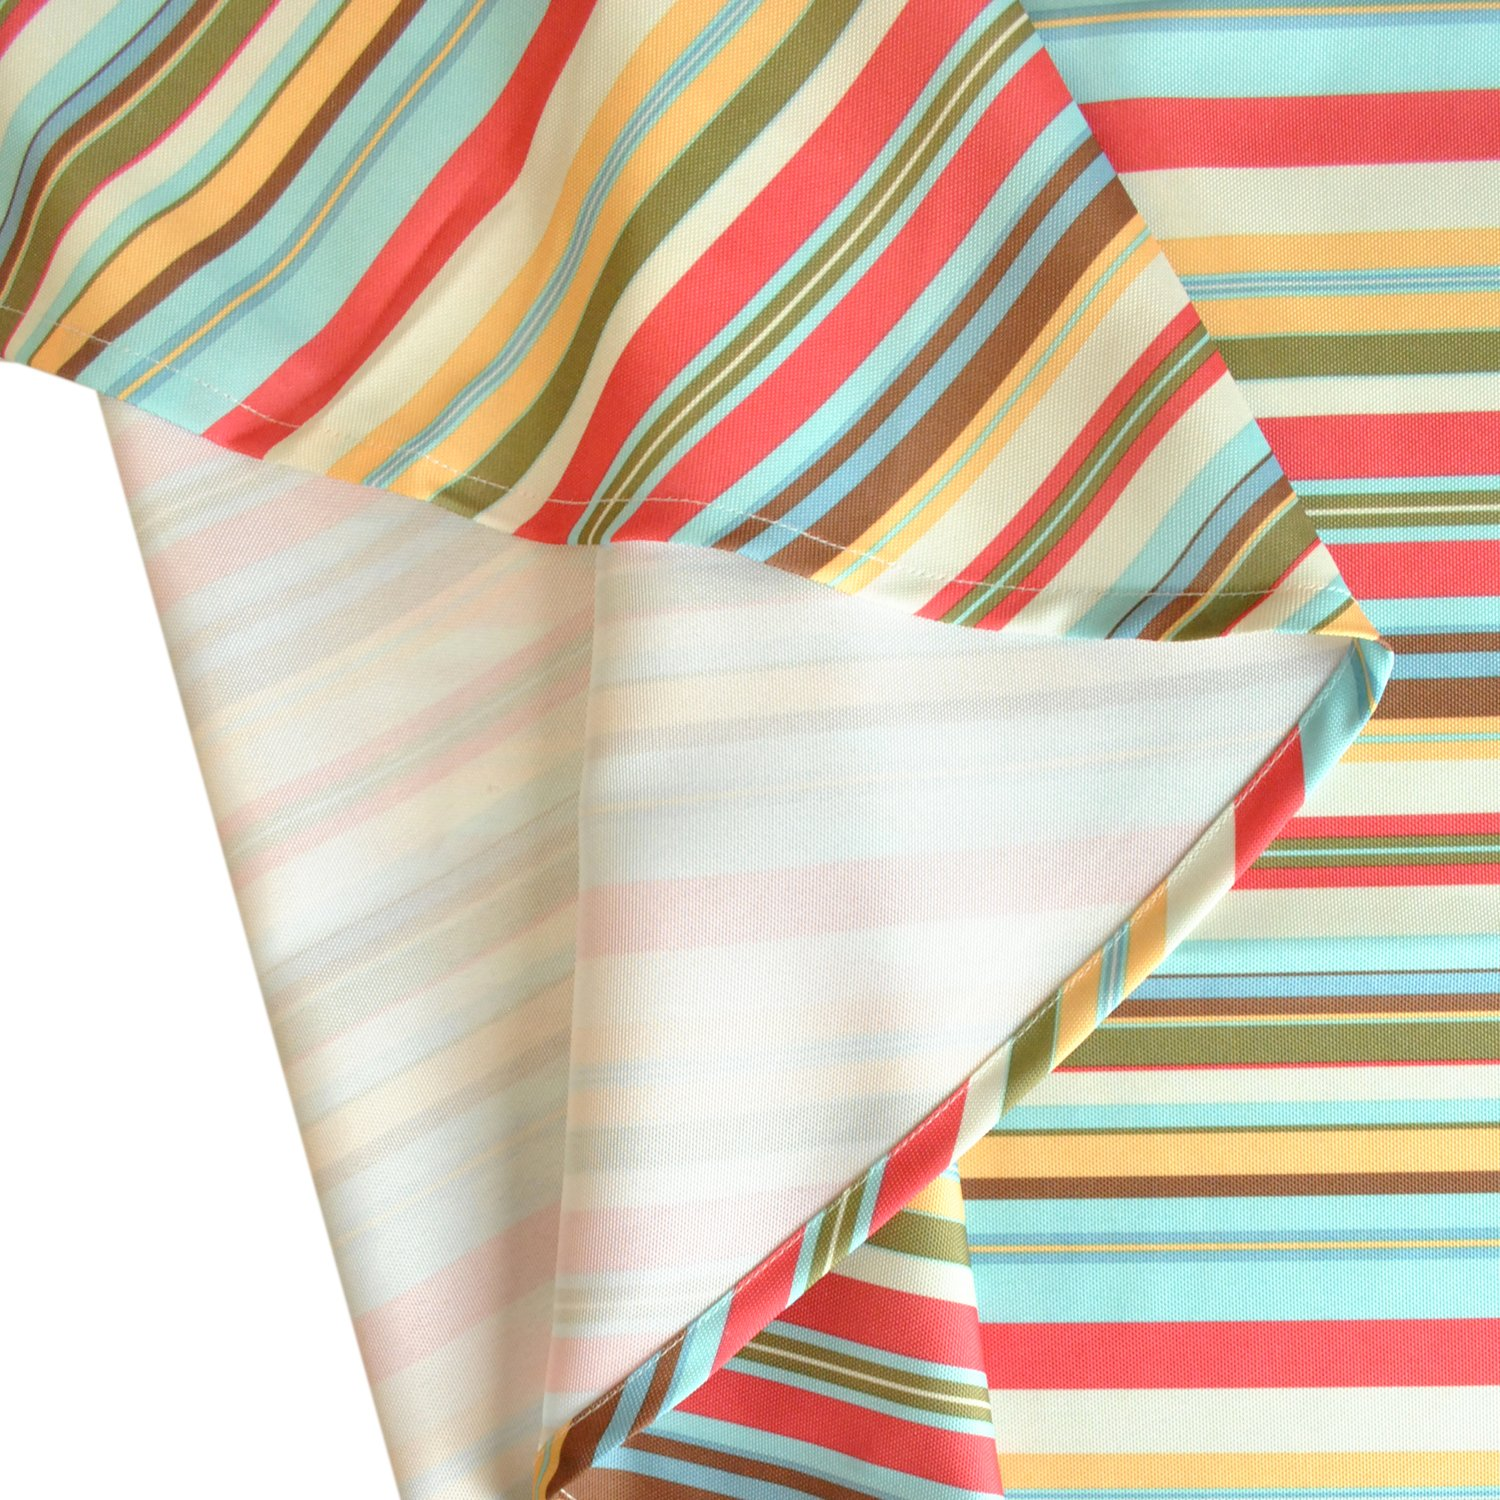 DII Spring & Summer Outdoor Tablecloth, Spill Proof and Waterproof with Zipper and Umbrella Hole, Host Backyard Parties, BBQs, & Family Gatherings - (60x84'' - Seats 6 to 8) Warm Summer Stripe by DII (Image #6)